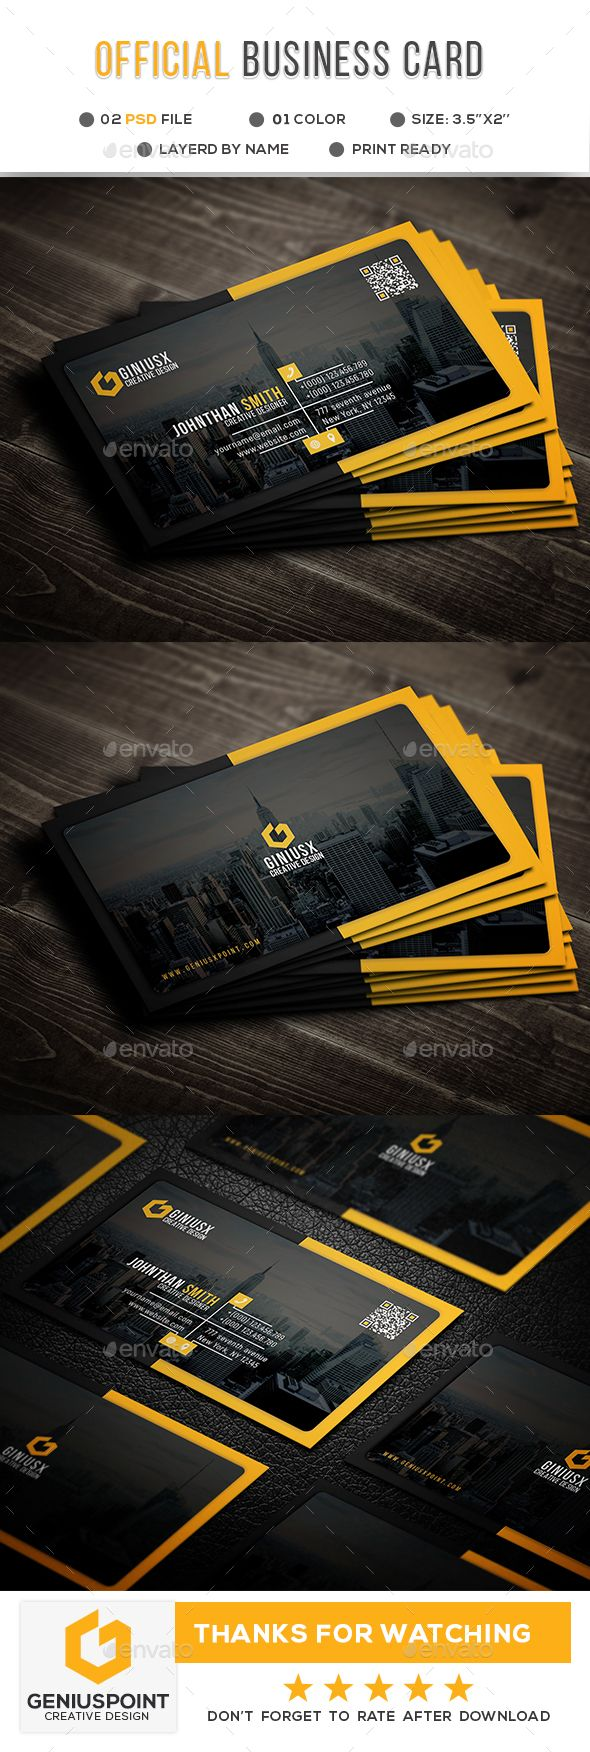 31 best business card images on pinterest name cards business official business card template psd reheart Choice Image